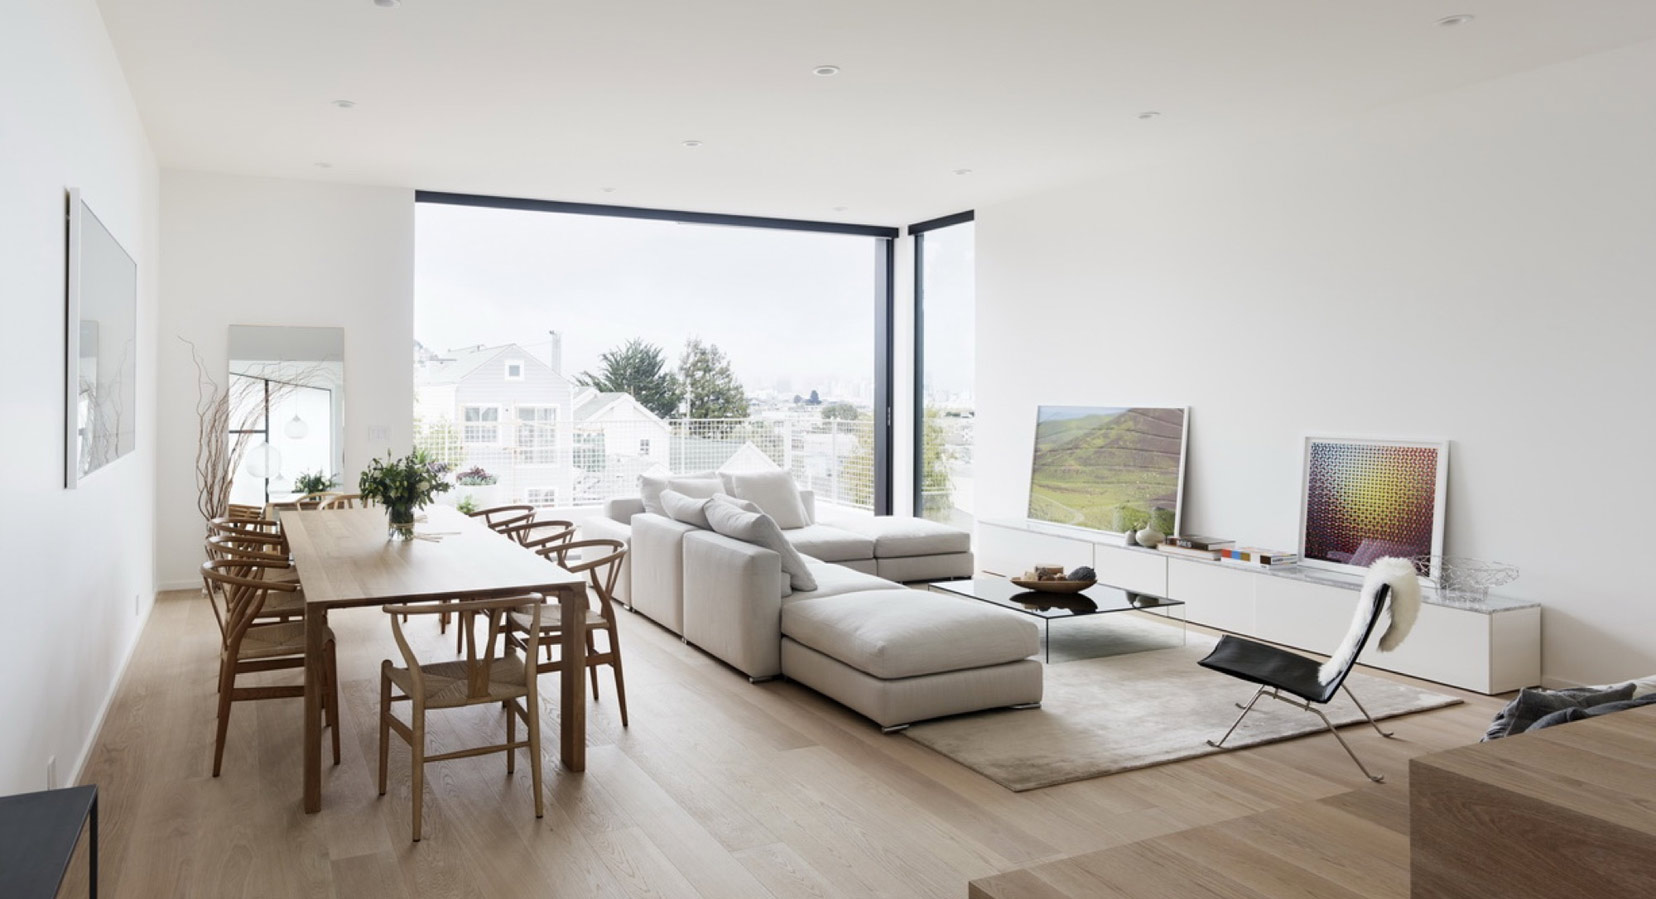 Edmonds + Lee Architects Create A Modern Family Home on a Sloping San Francisco Street